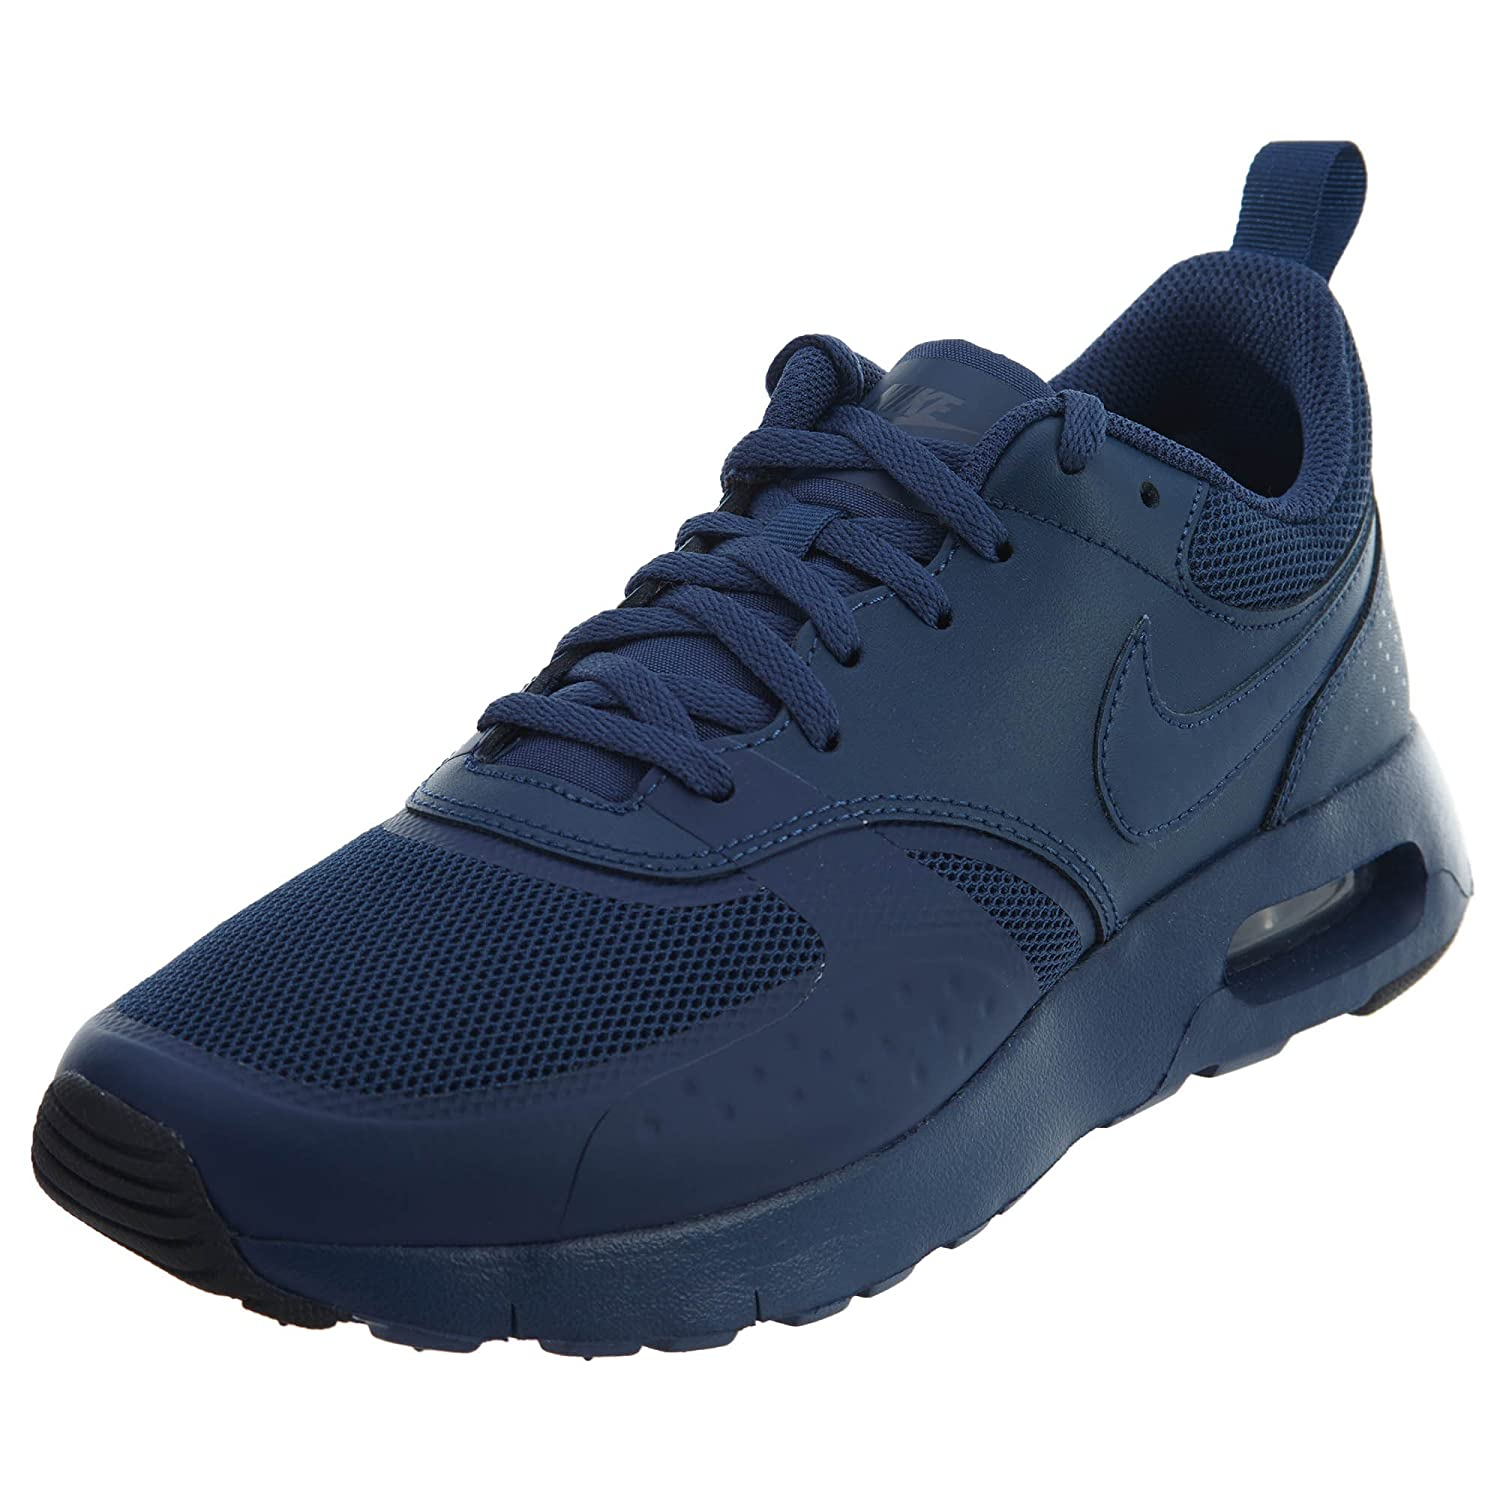 a648236a8a Nike Kids Air Max Vision (GS) Running Shoe: Amazon.co.uk: Shoes & Bags